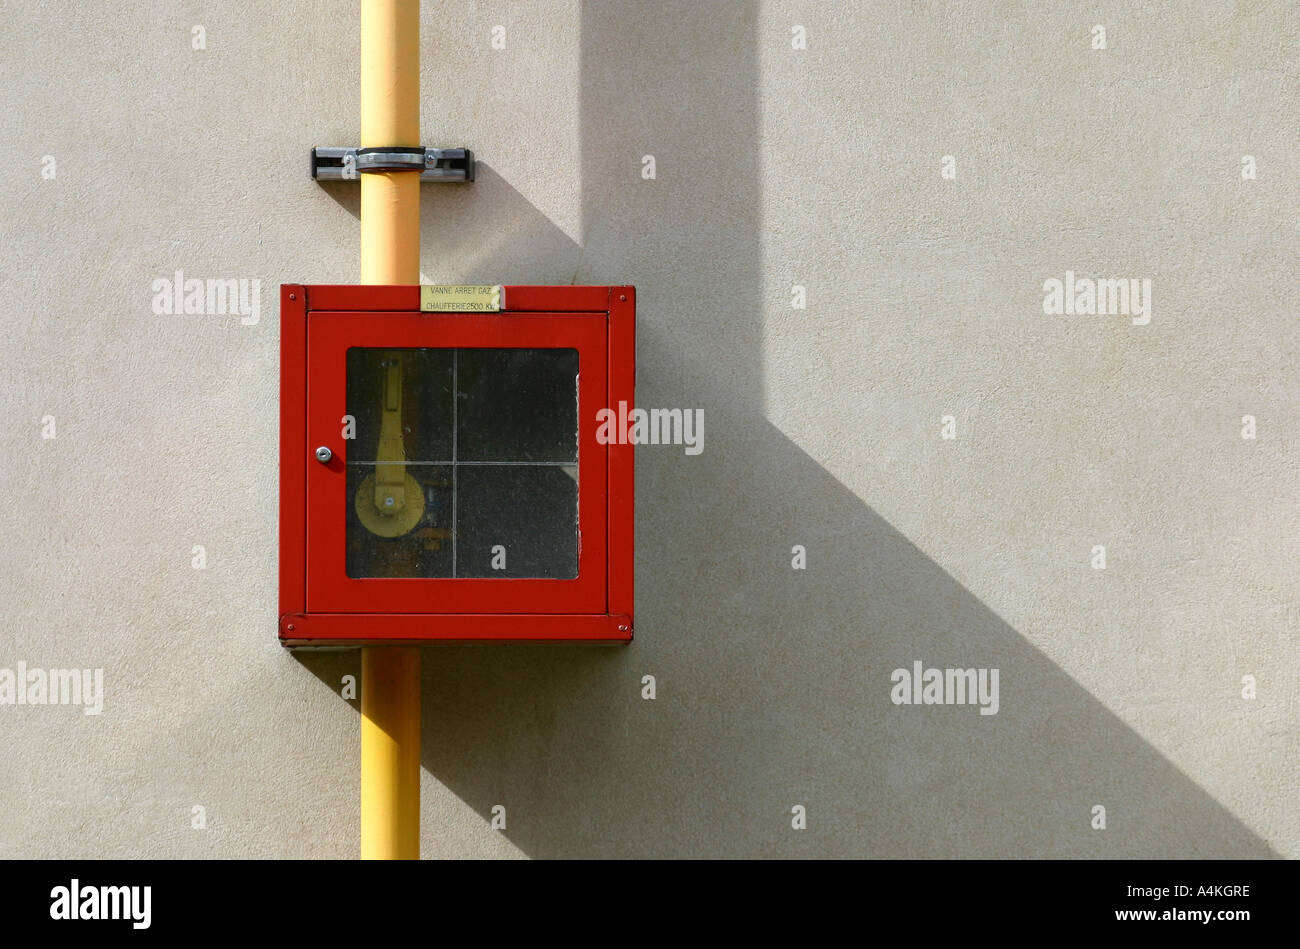 [DIAGRAM_1CA]  Fuse Box Circuit Breaker High Resolution Stock Photography and Images -  Alamy | Security Fuse Breaker Box |  | Alamy